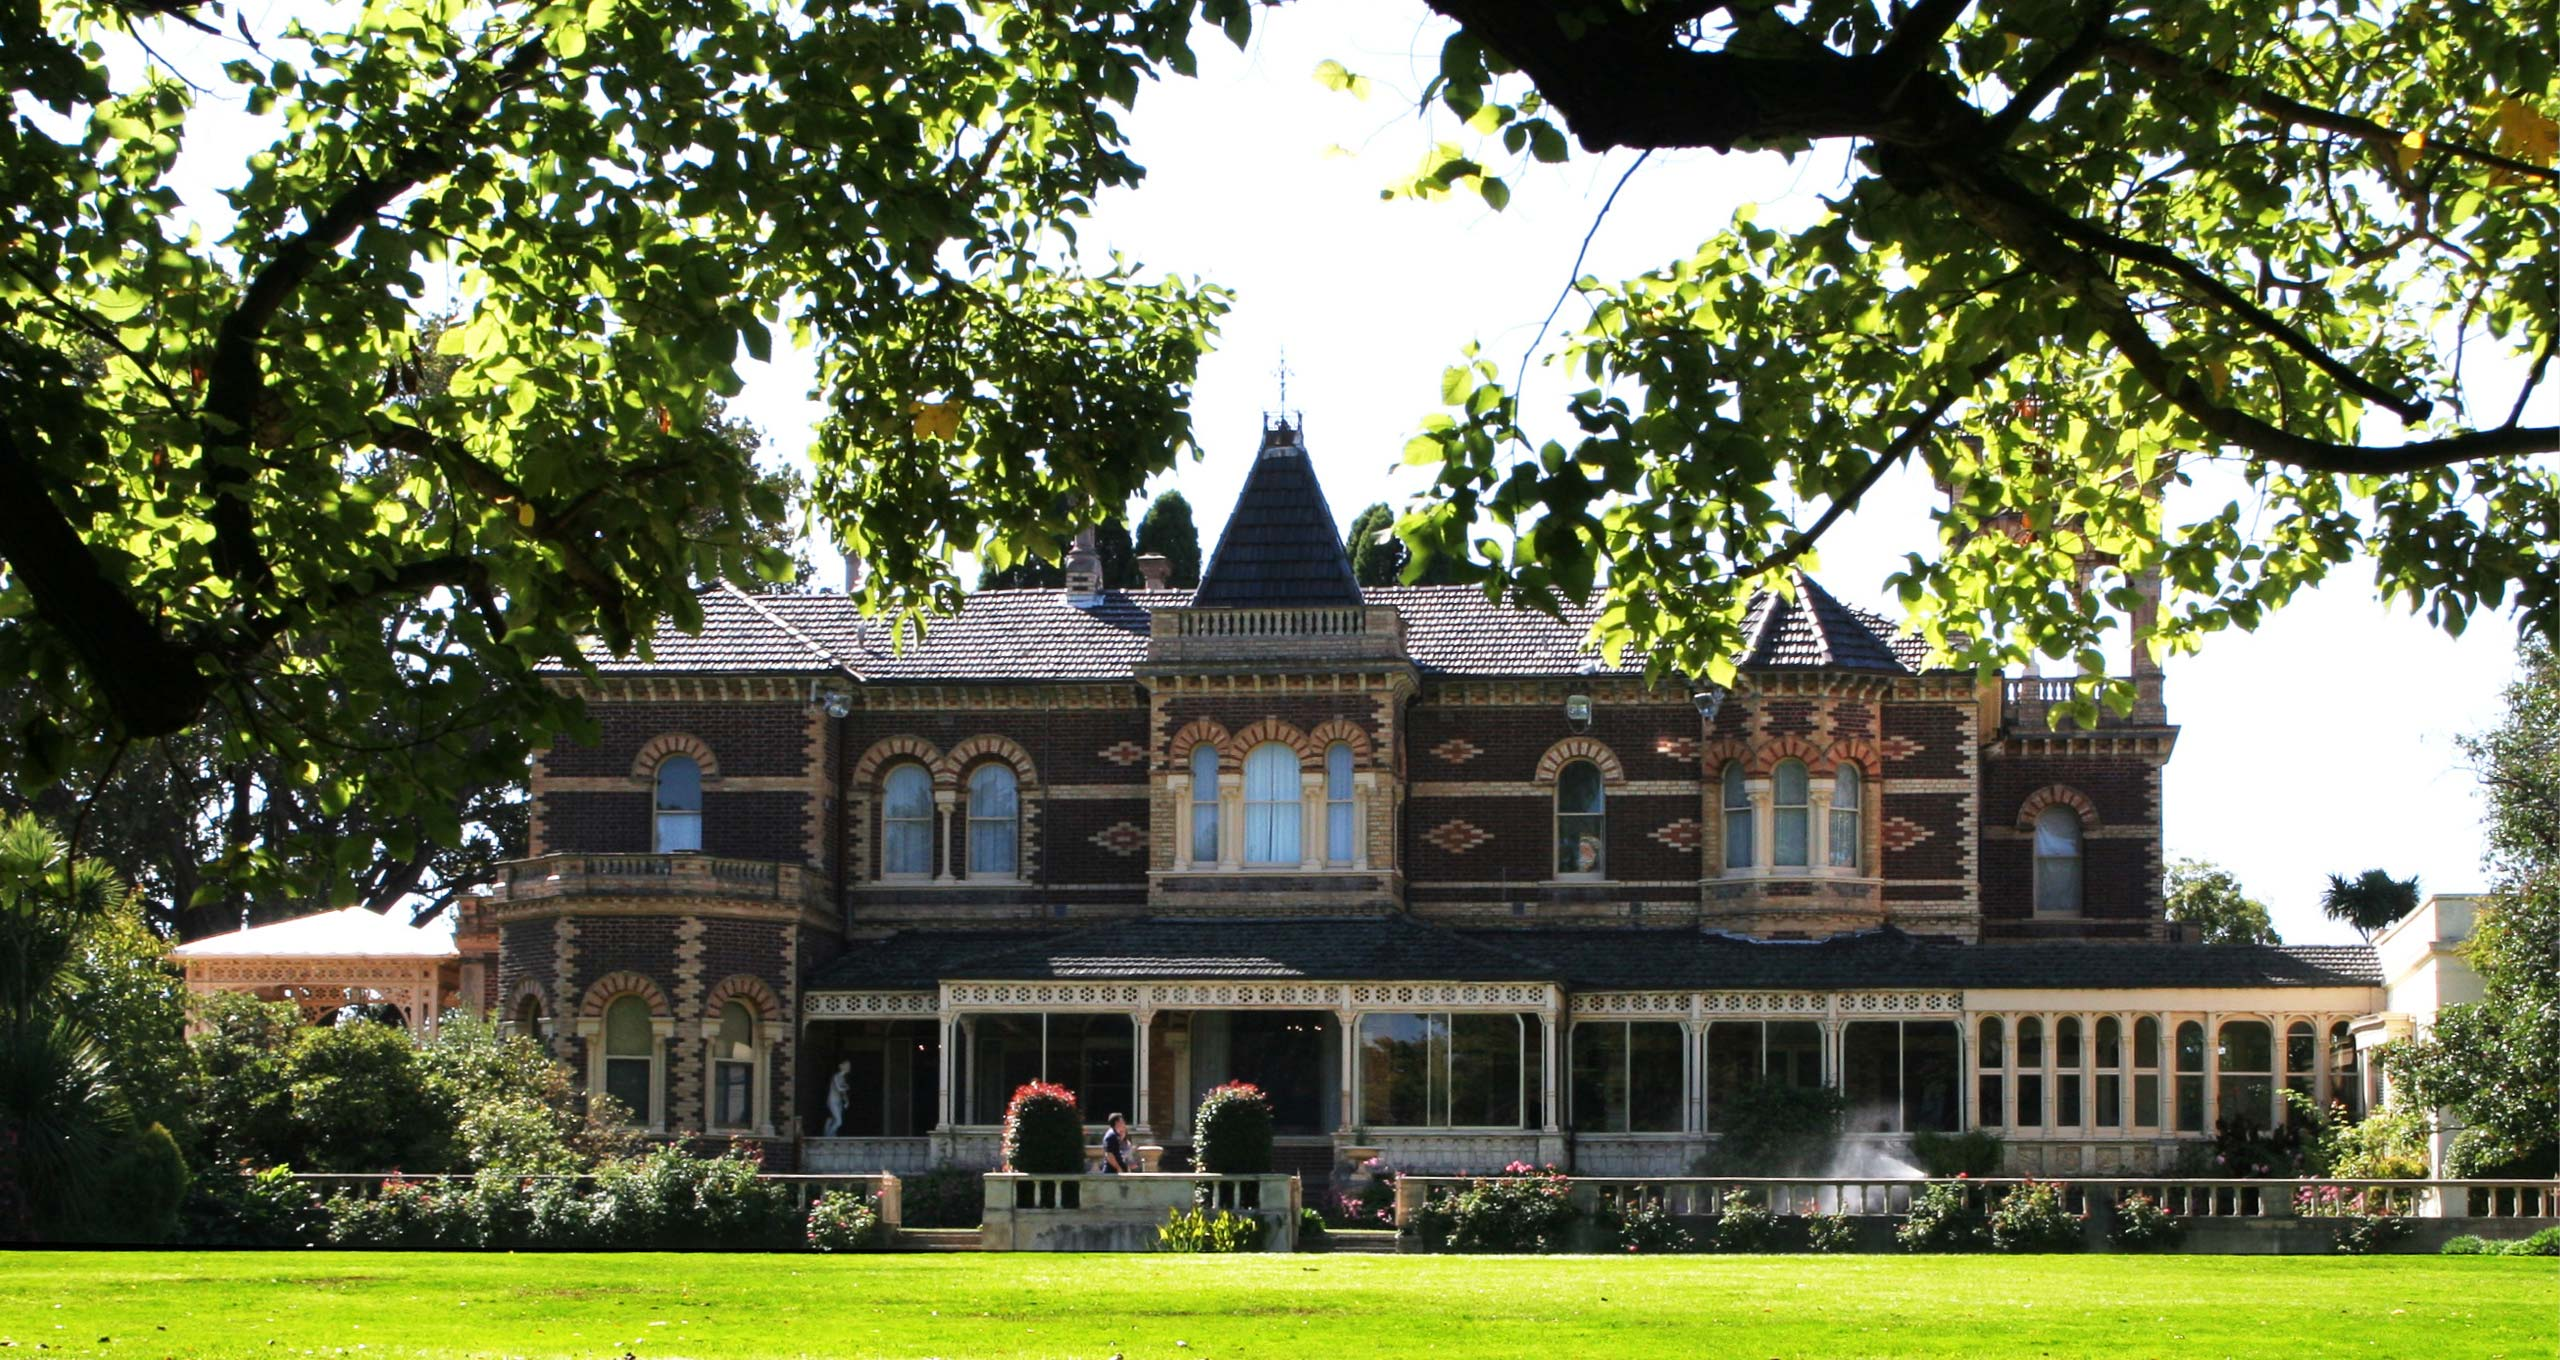 Rippon Lea House & Gardens Melbourne exterior with lawn Peter Rowland Venue